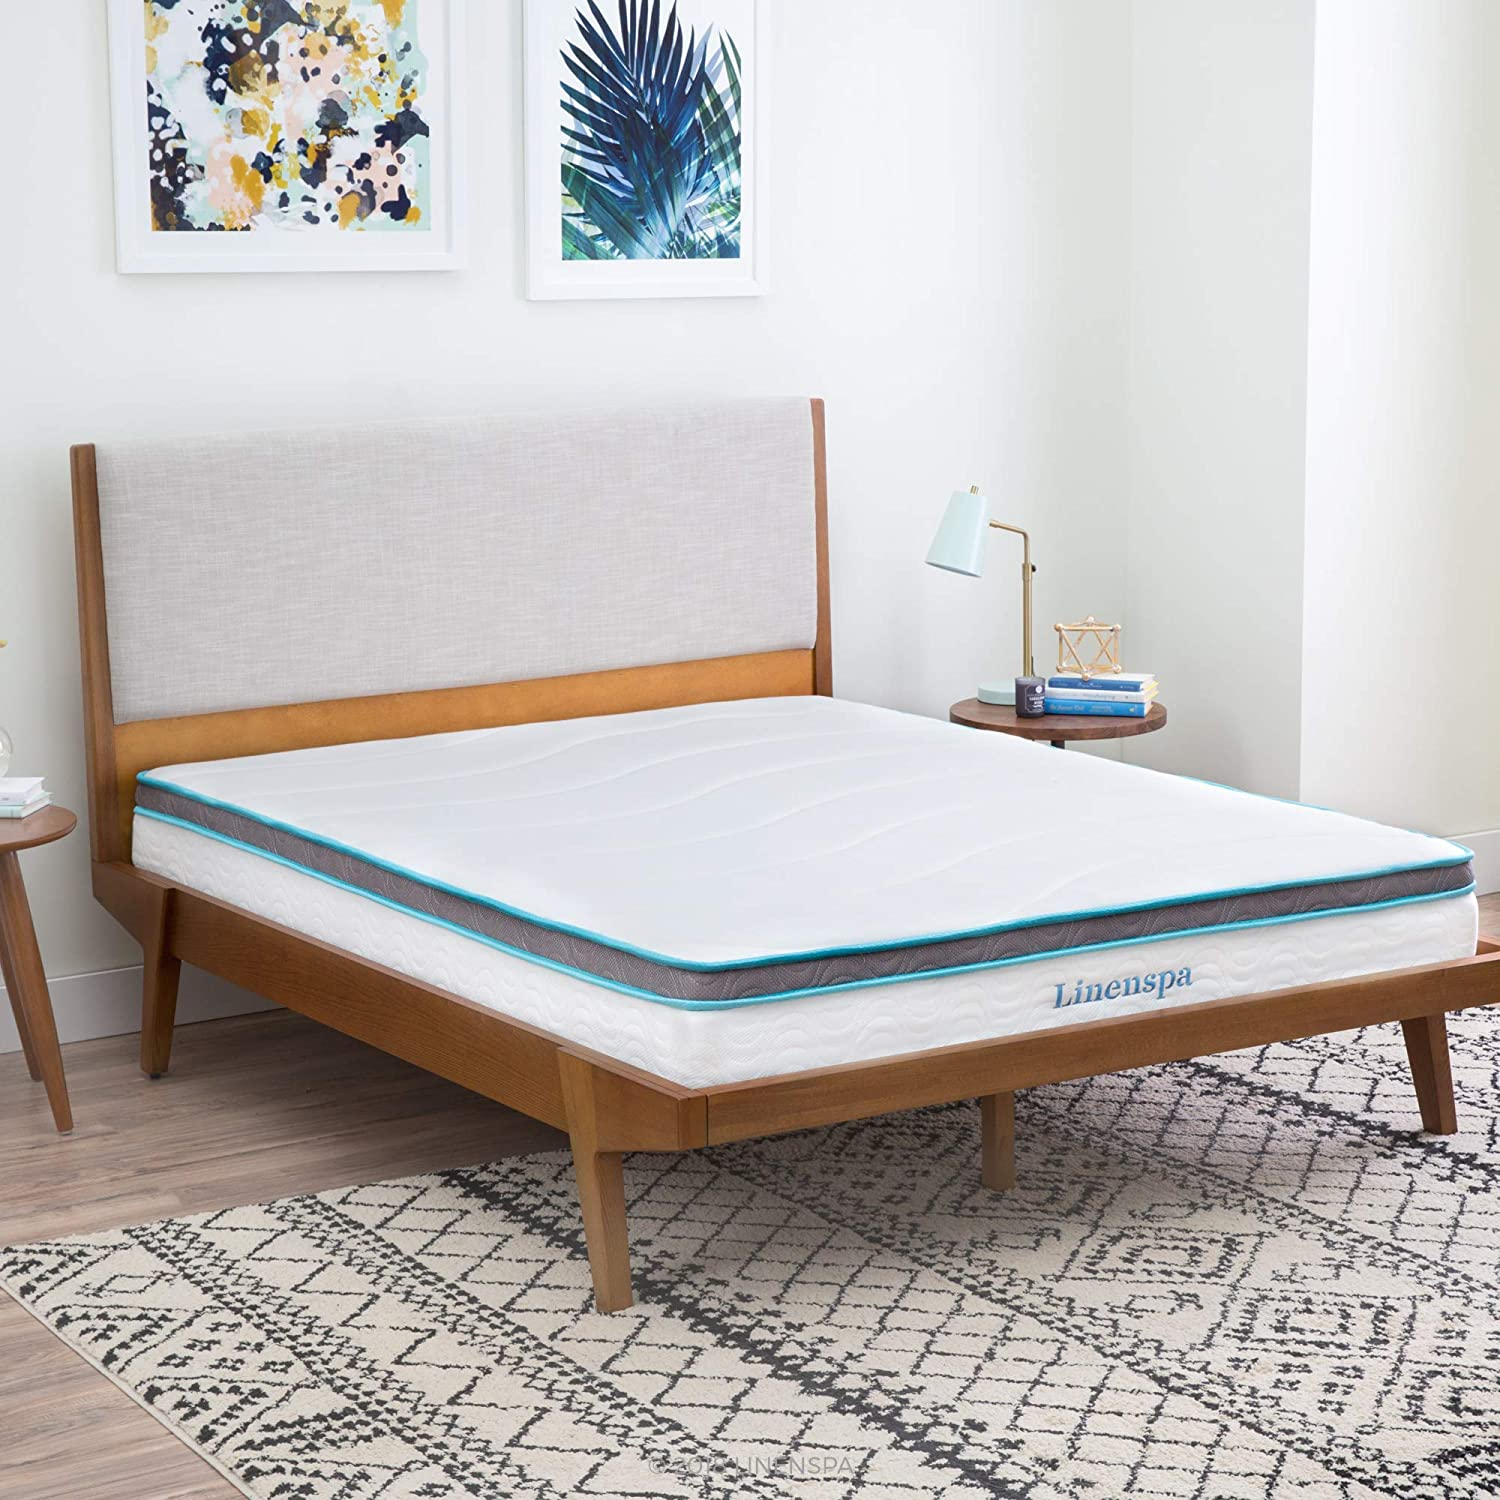 Instructions to buy the best twin mattresses for you